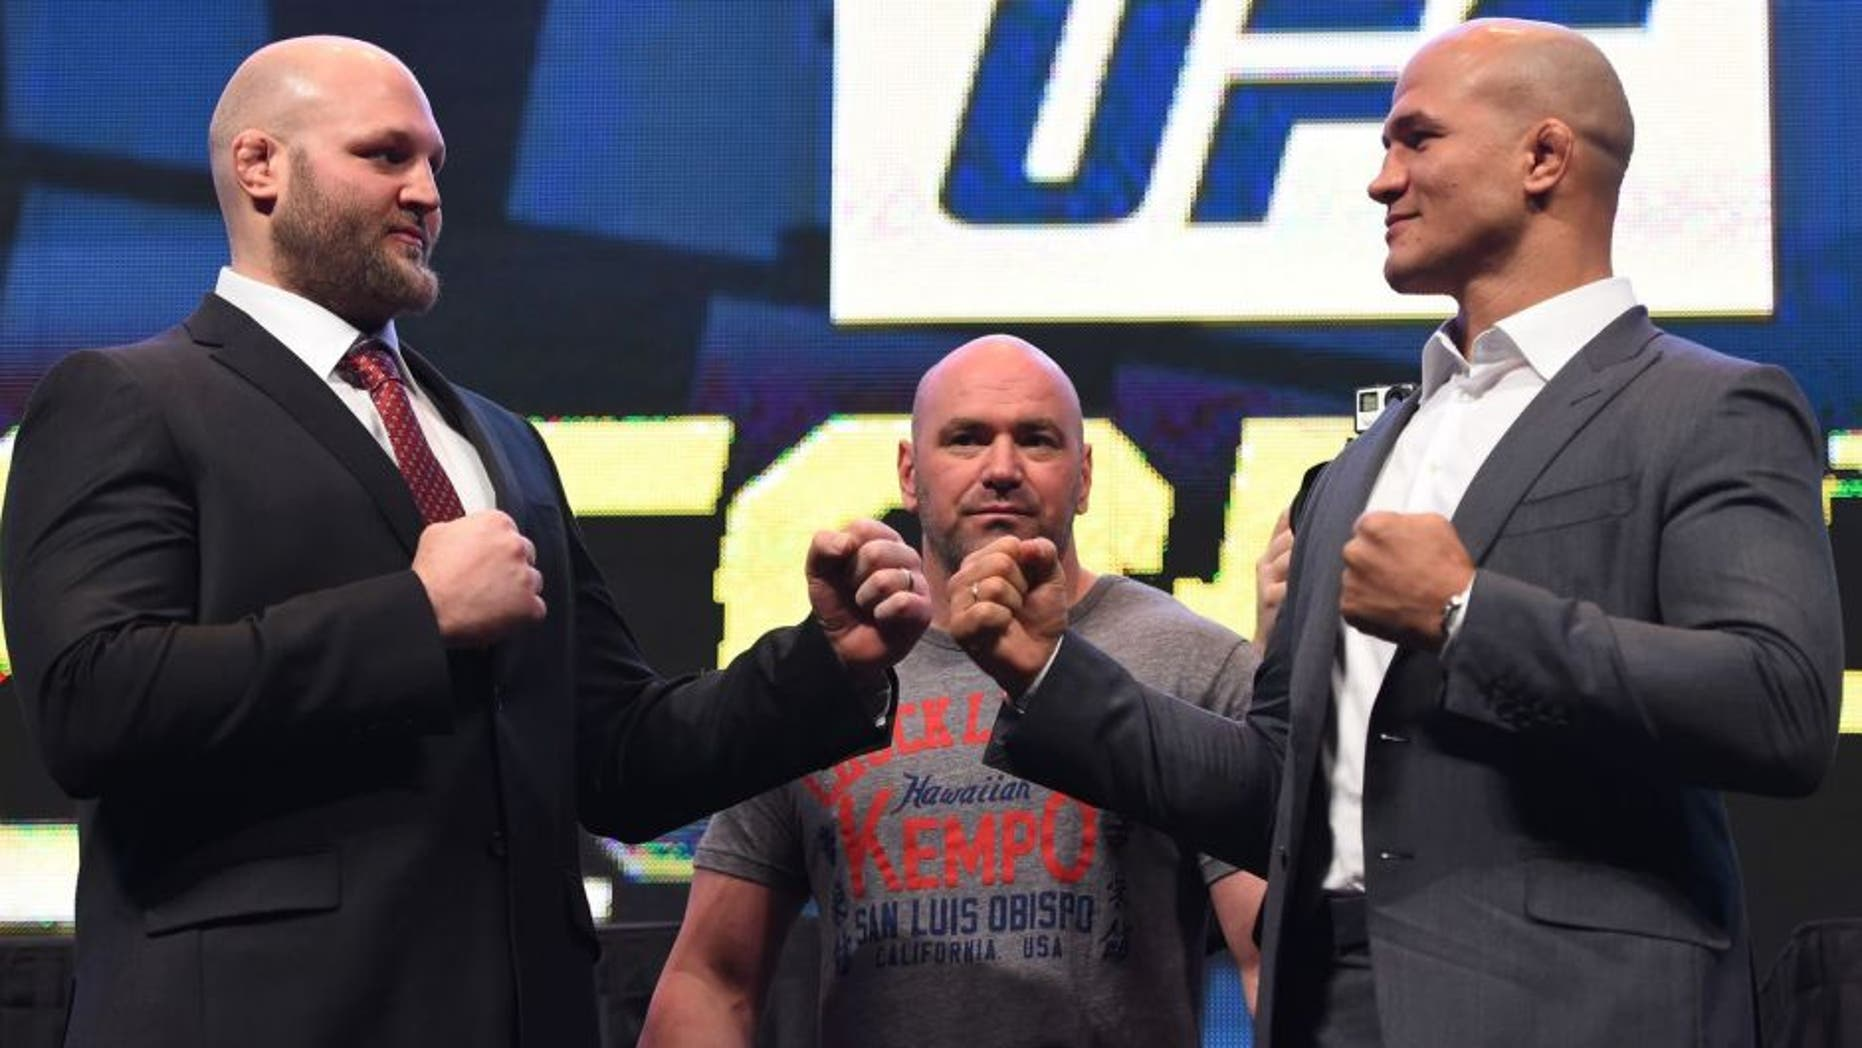 LAS VEGAS, NV - MARCH 04: (L-R) Opponents Ben Rothwell and Junior dos Santos face off during the UFC Unstoppable launch press conference at the MGM Grand Garden Arena on March 4, 2016 in Las Vegas, Nevada. (Photo by Josh Hedges/Zuffa LLC/Zuffa LLC via Getty Images)